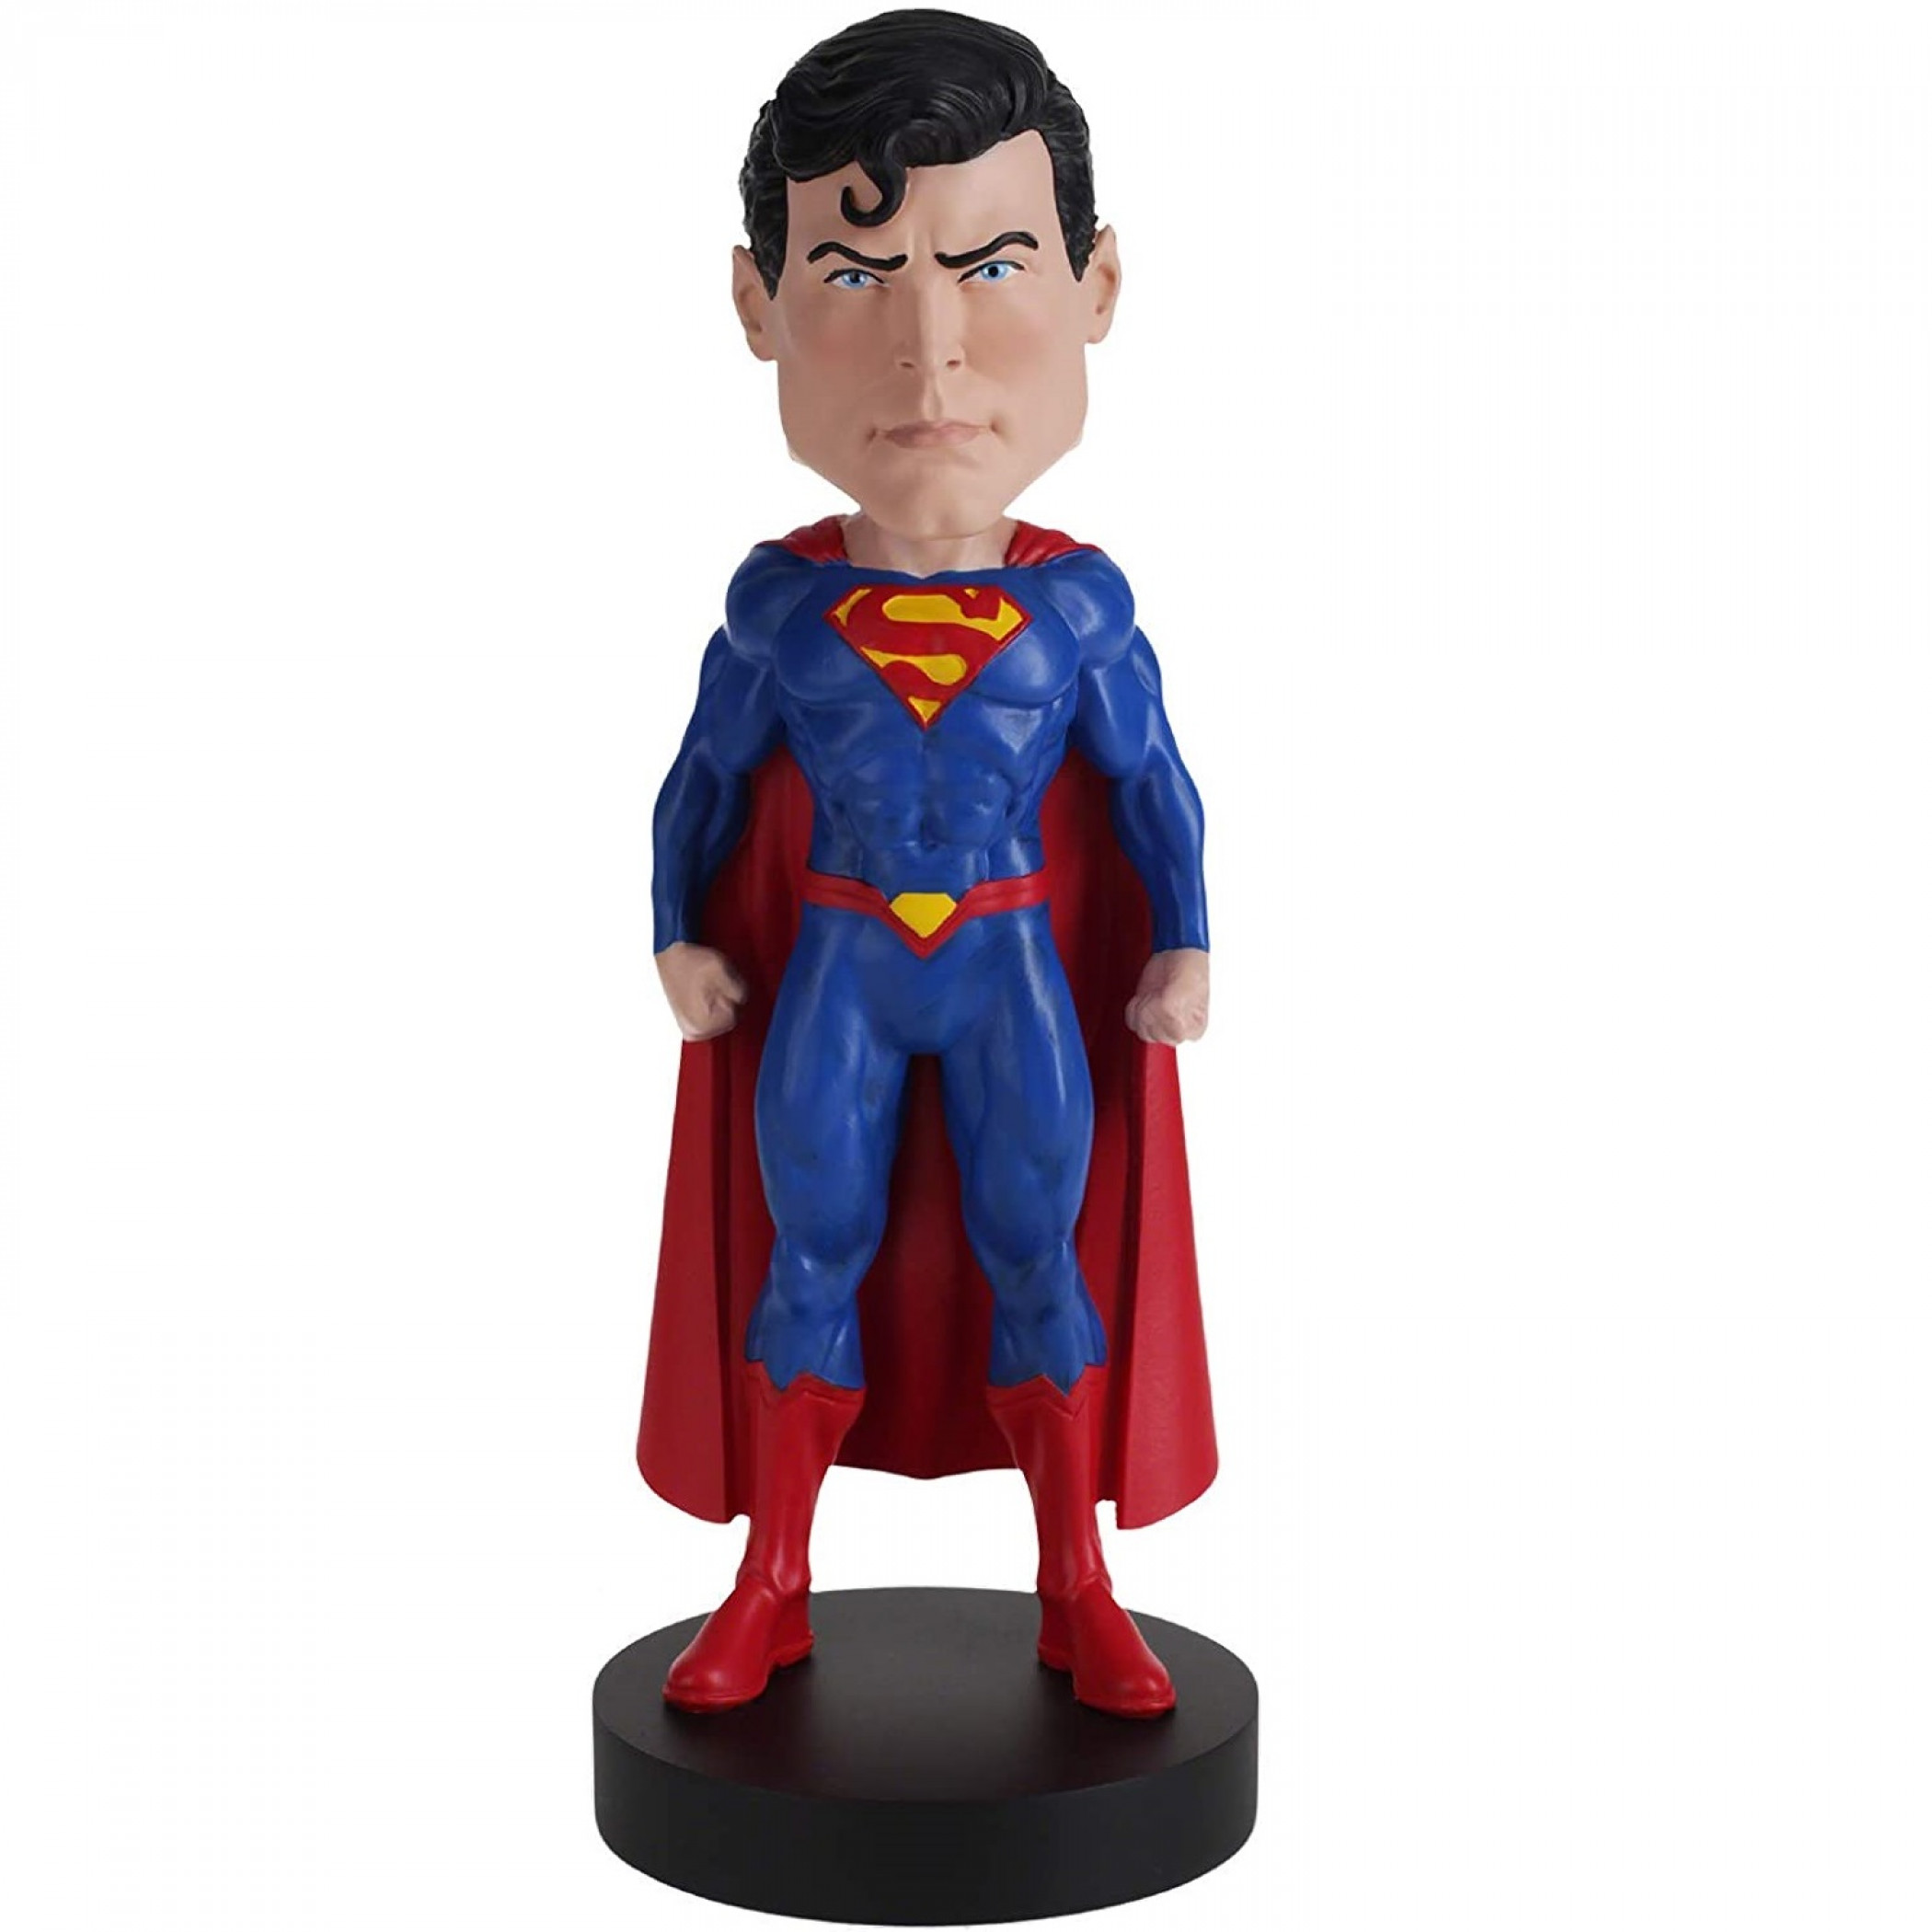 "DC Comics Superman Rebirth 6"" Vinyl Bobble Head"